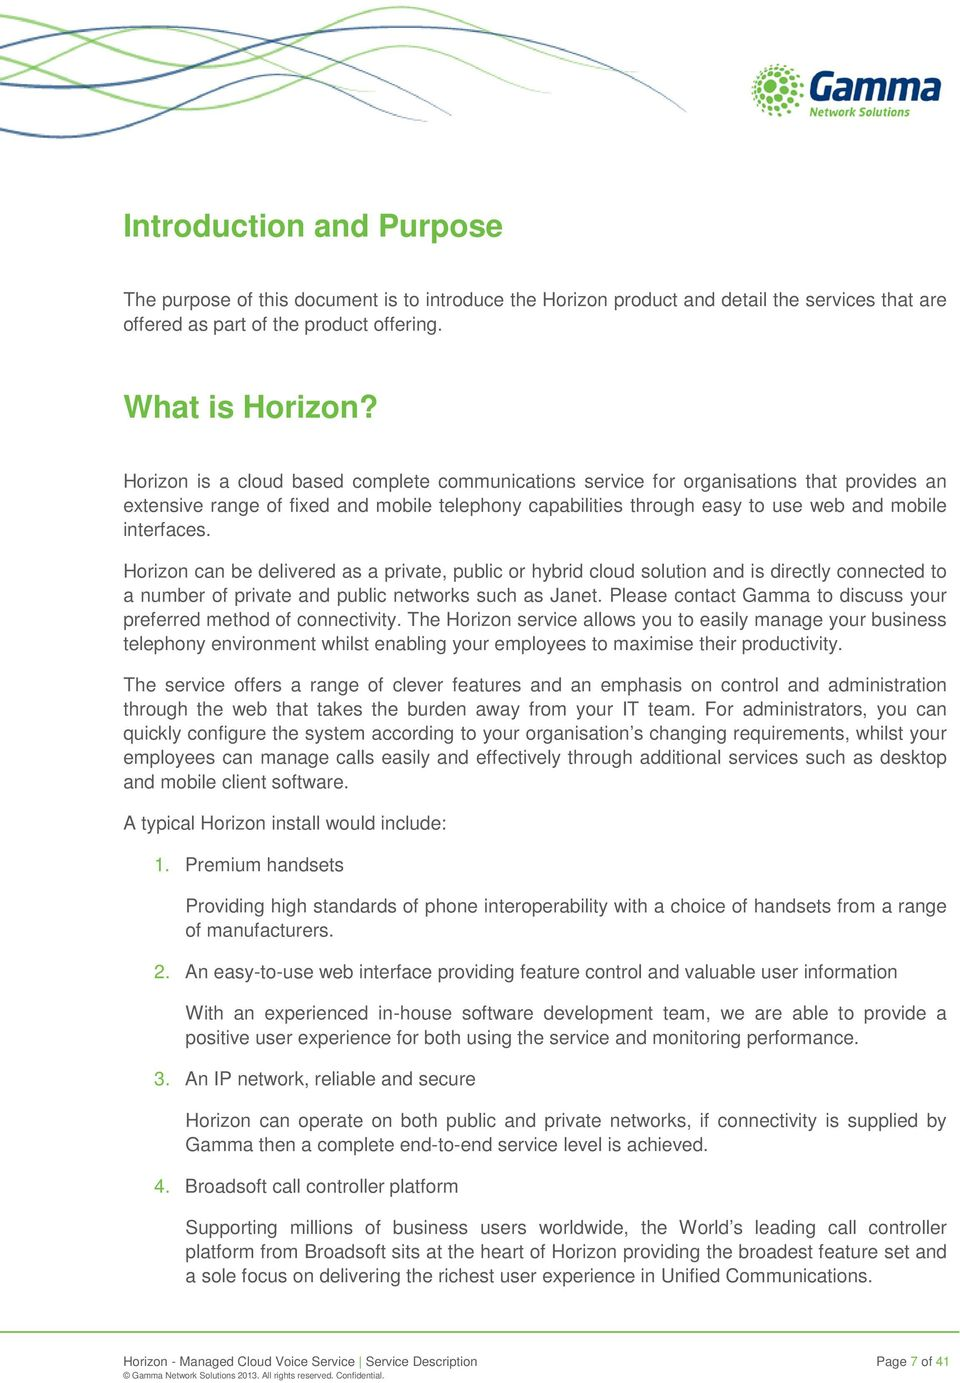 Horizon can be delivered as a private, public or hybrid cloud solution and is directly connected to a number of private and public networks such as Janet.